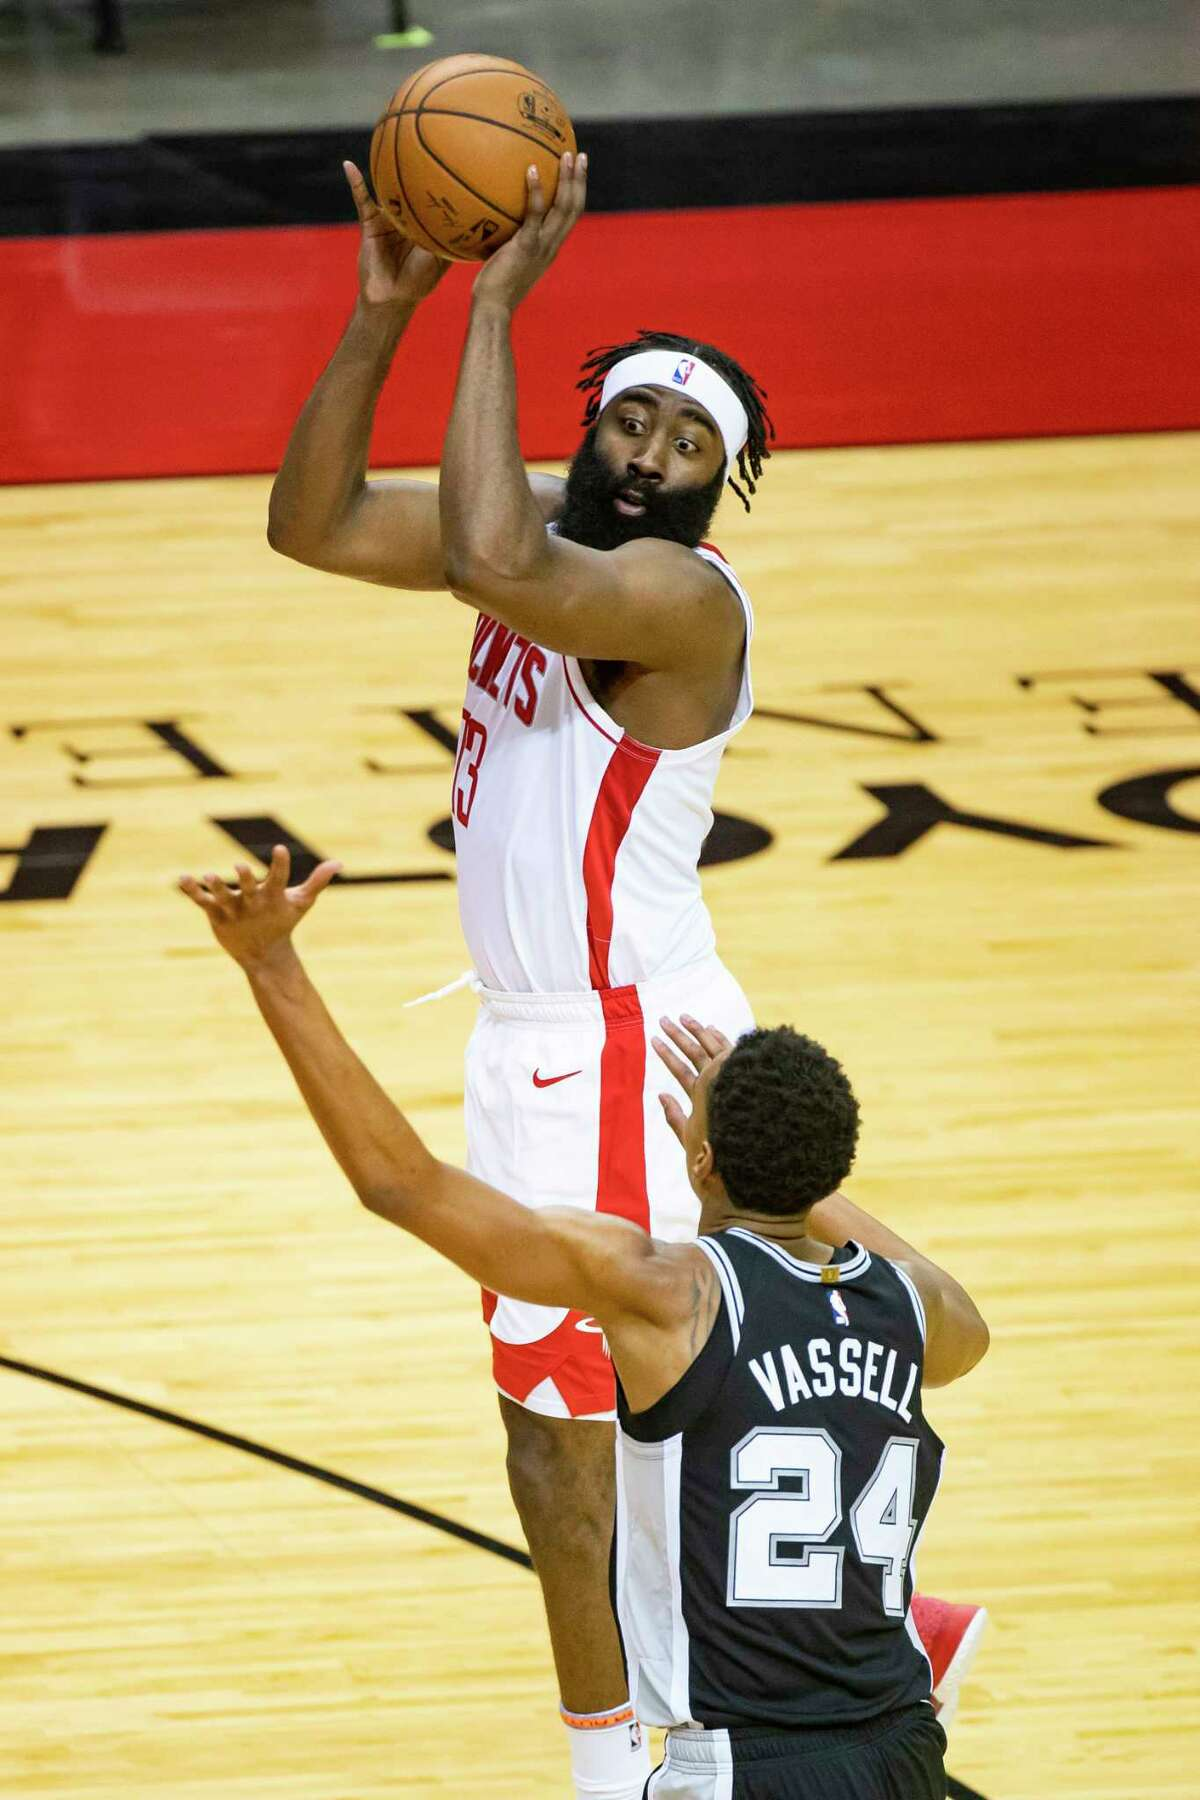 Houston Rockets guard James Harden (13) passes over San Antonio Spurs guard Devin Vassell (24) during the first half of a preseason game between the Houston Rockets and San Antonio Spurs on Tuesday, Dec. 15, 2020, at Toyota Center in Houston.